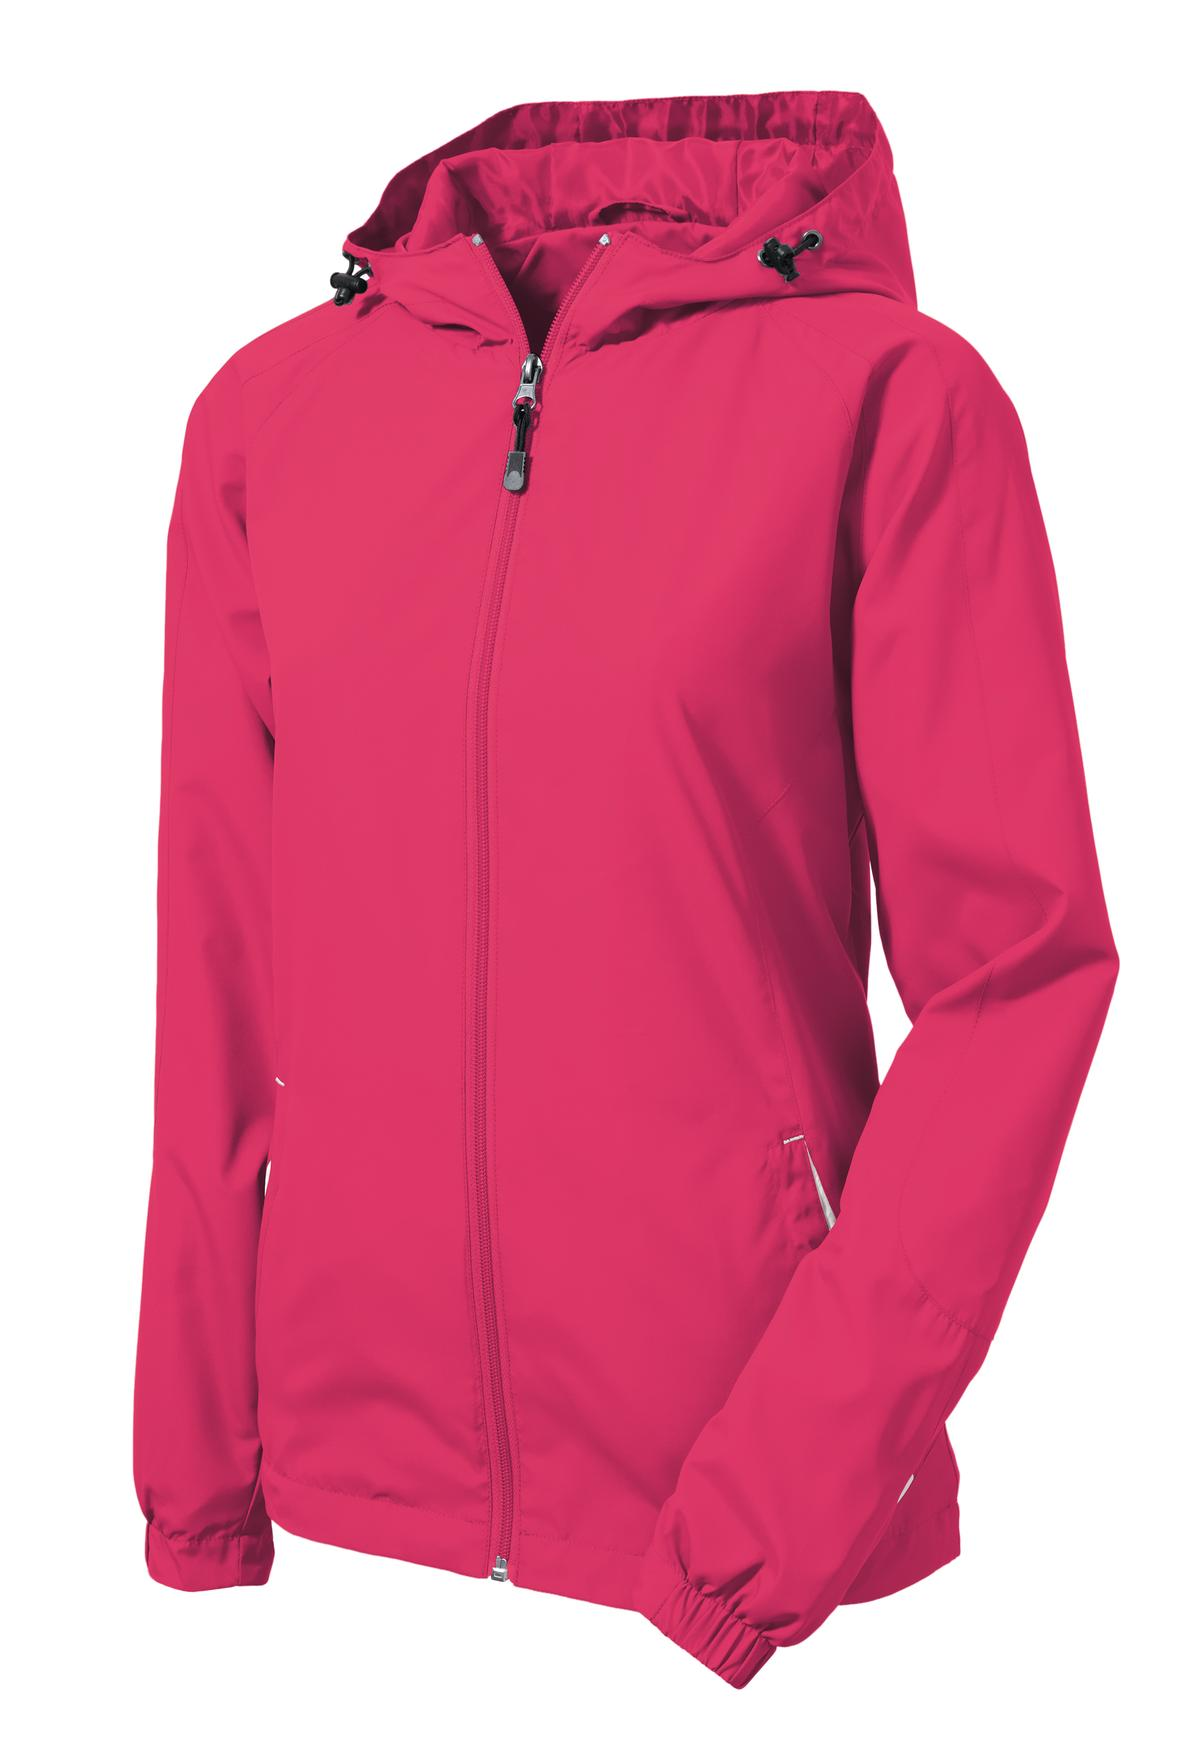 Mafoose Women's Colorblock Hooded Raglan Jacket Pink Raspberry/White-Front